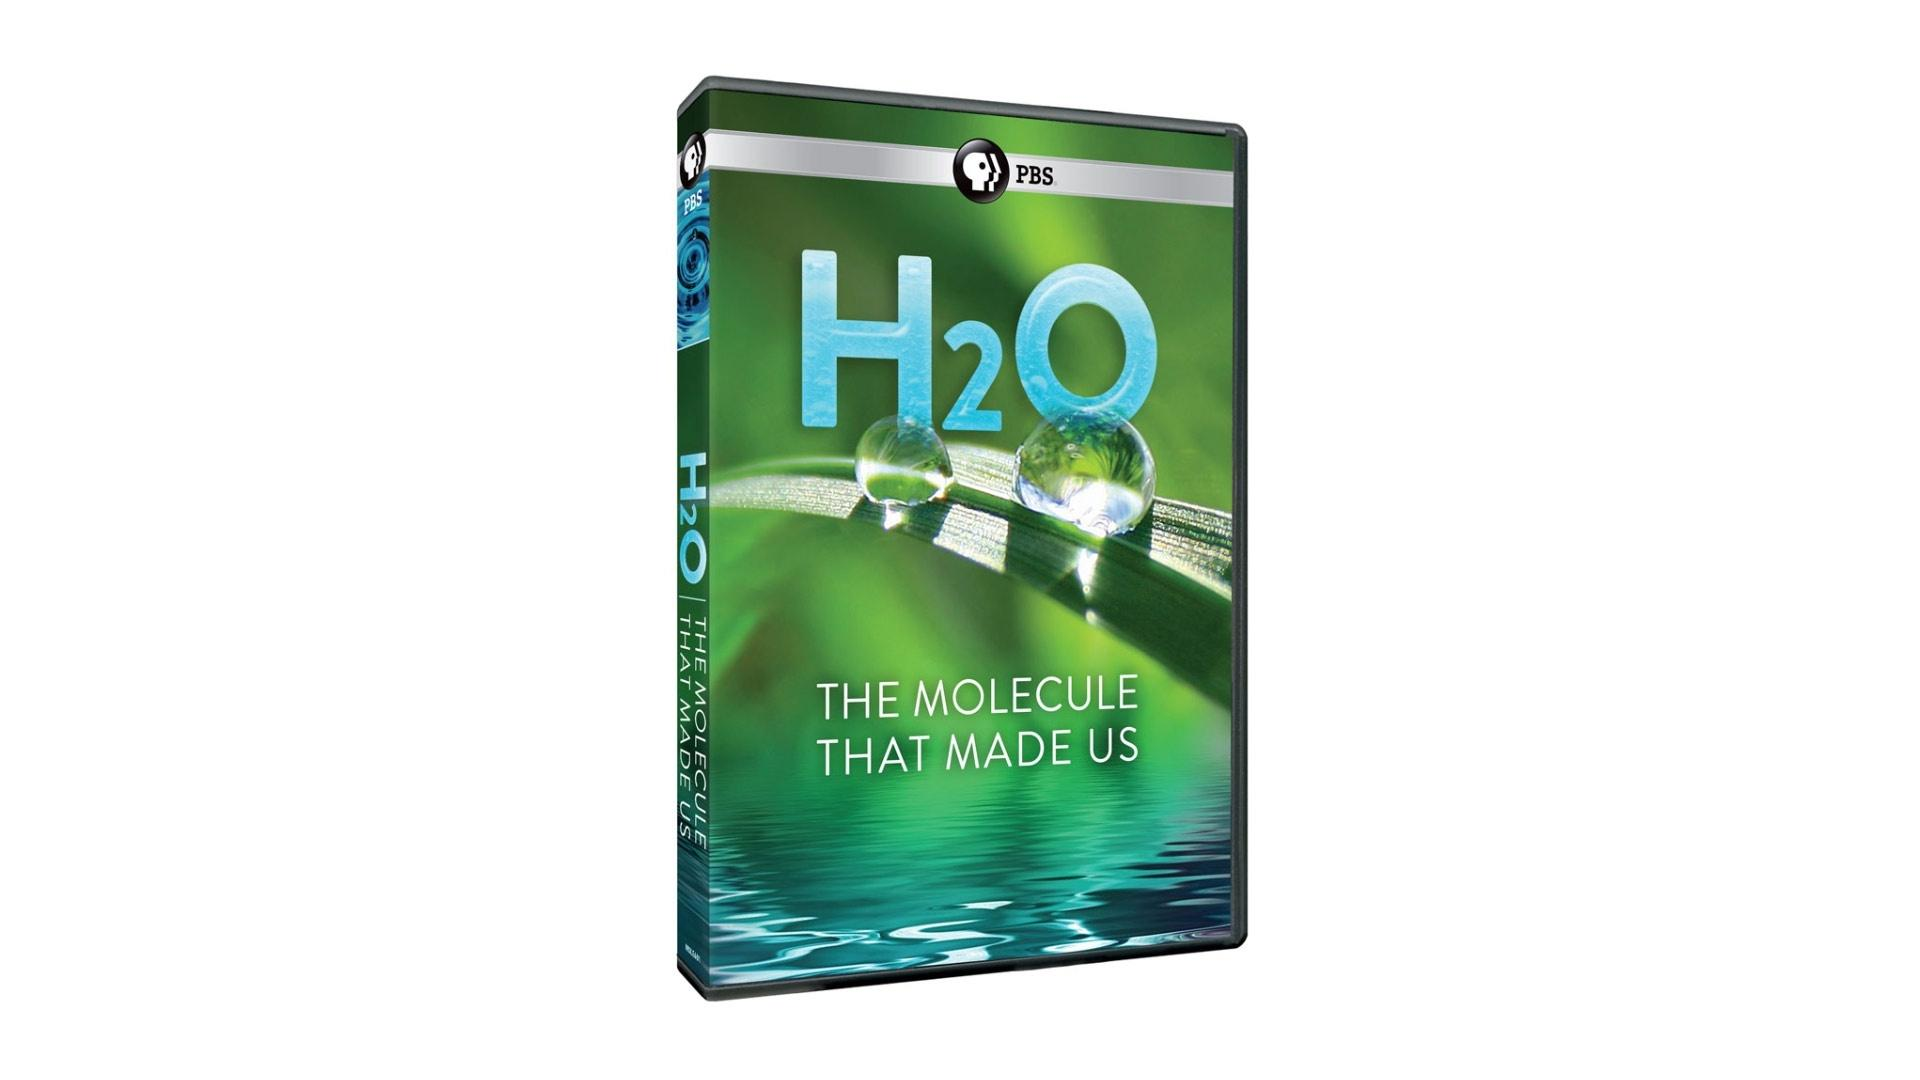 H2O: The Molecule That Made Us - the DVD